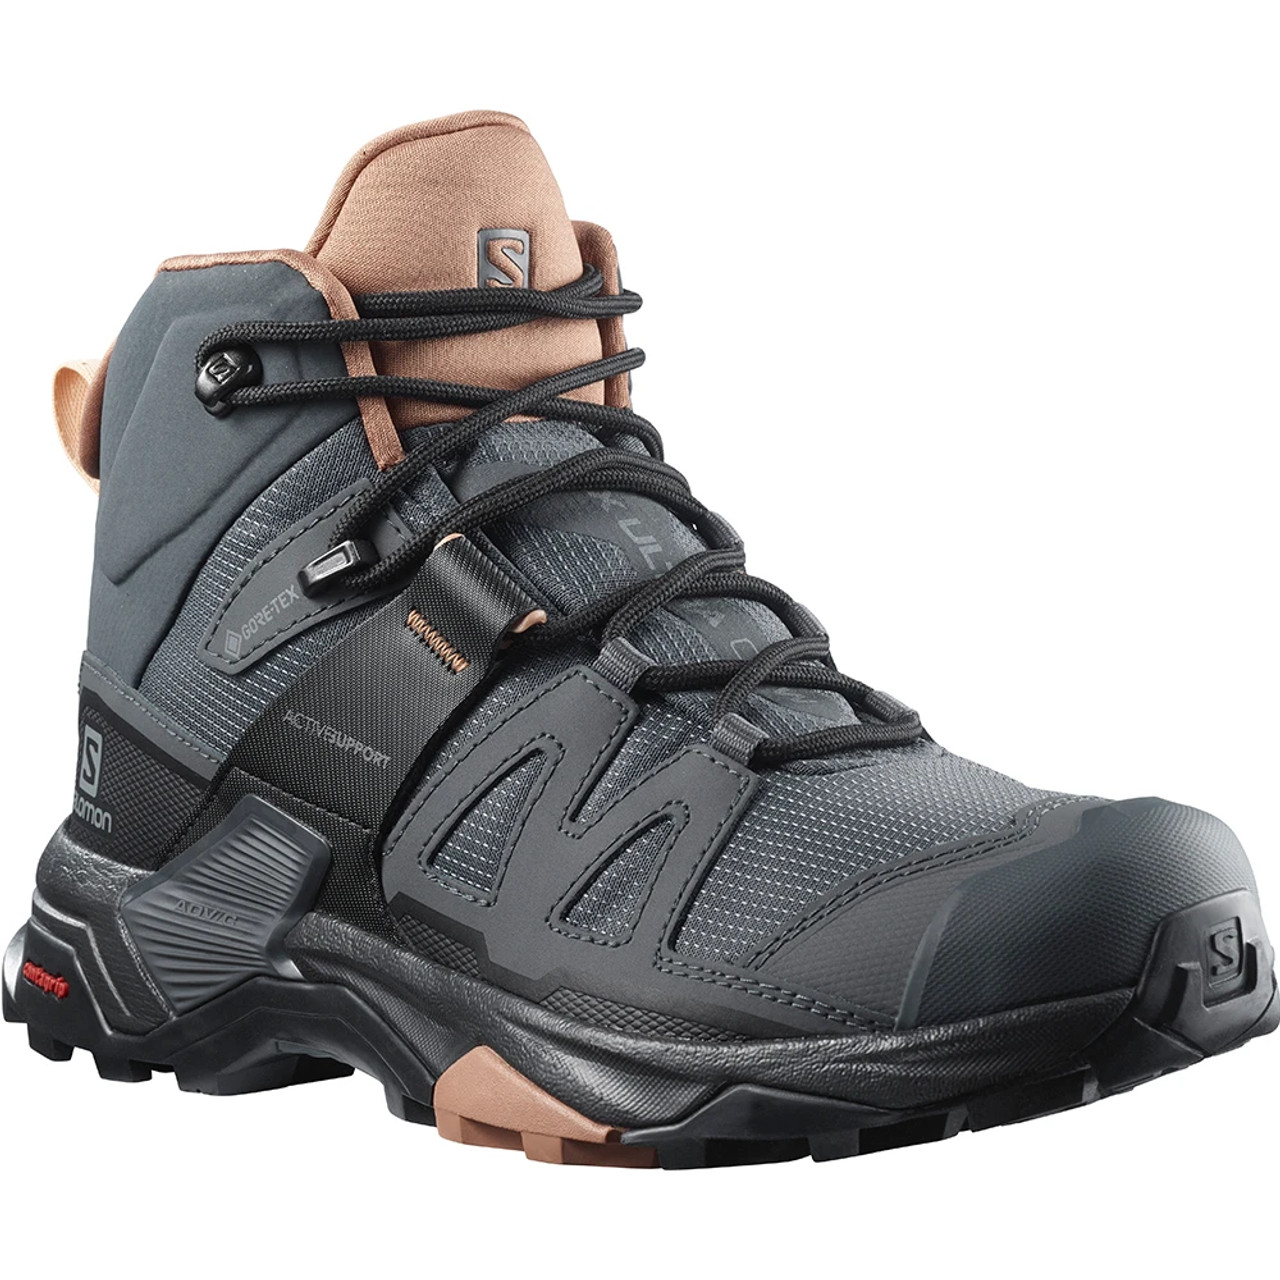 Salomon X Ultra 4 Mid GTX - WMS Online at Mountain Mail Order South Africa - Front